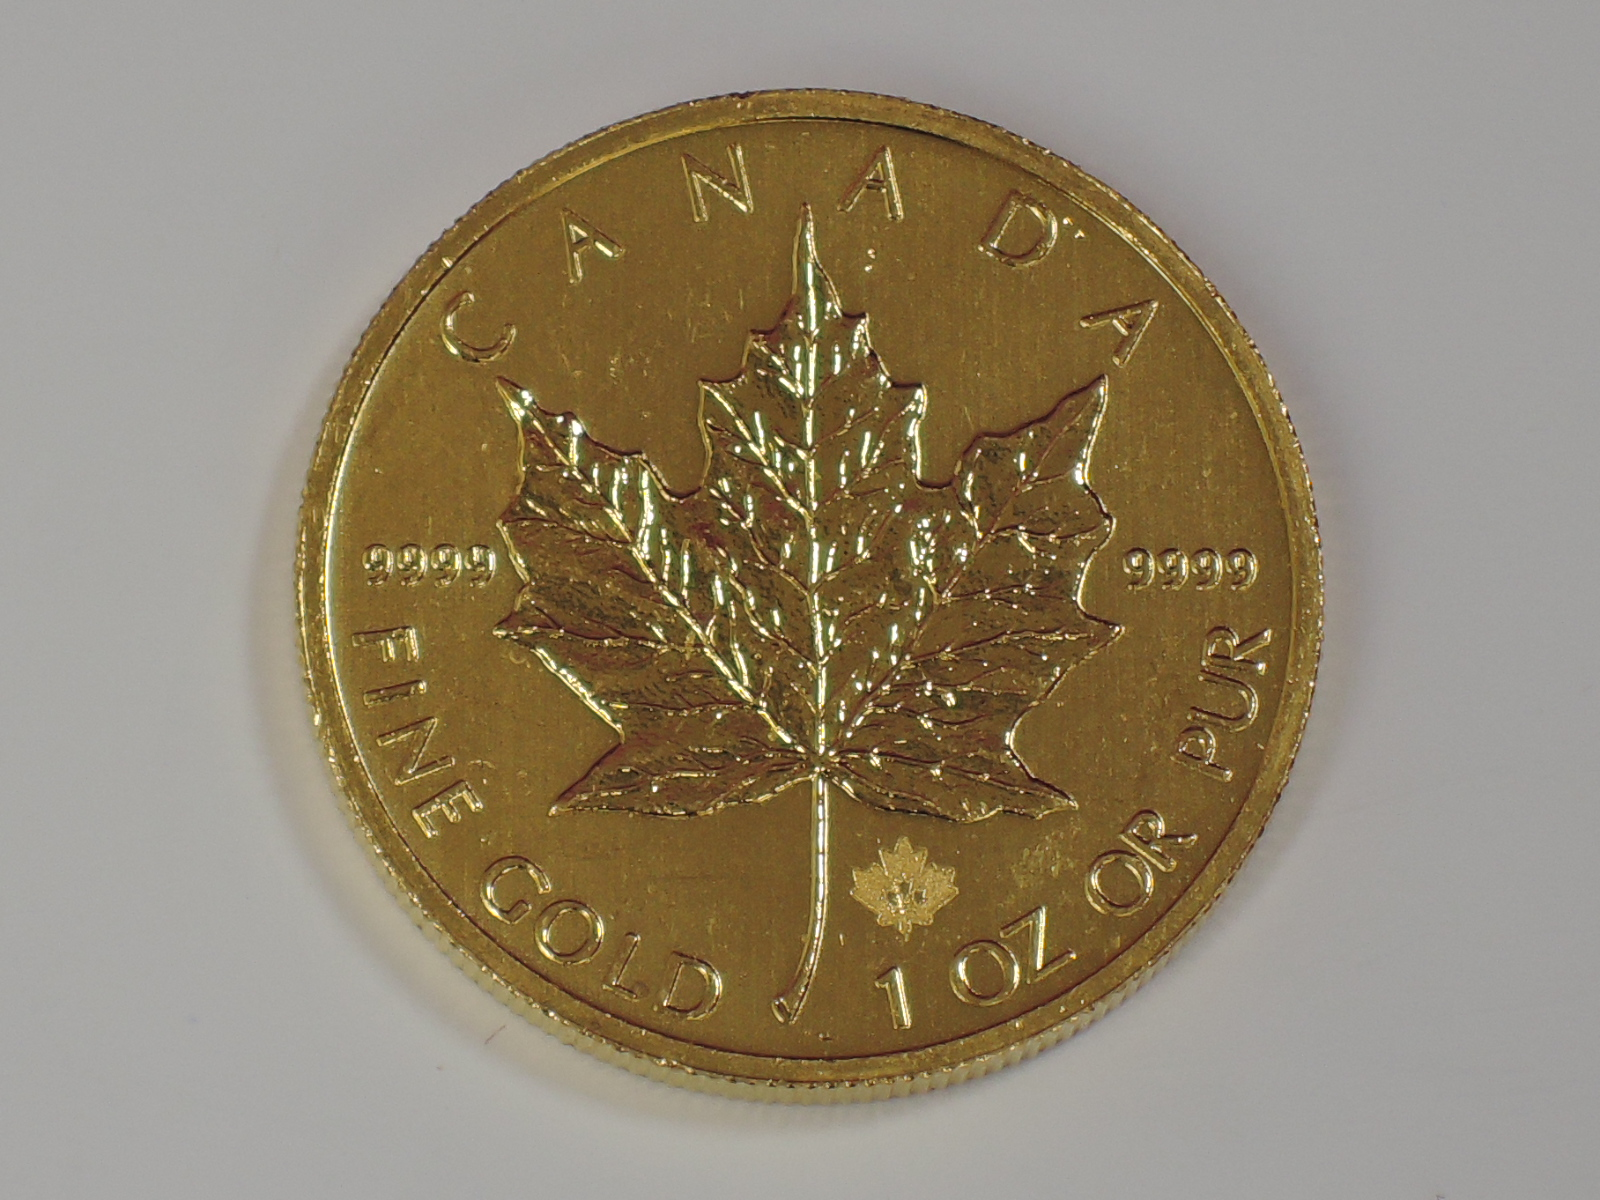 Lot 648 - A gold 1oz 2014 Canada 50 dollar Maple leaf coin, in plastic case